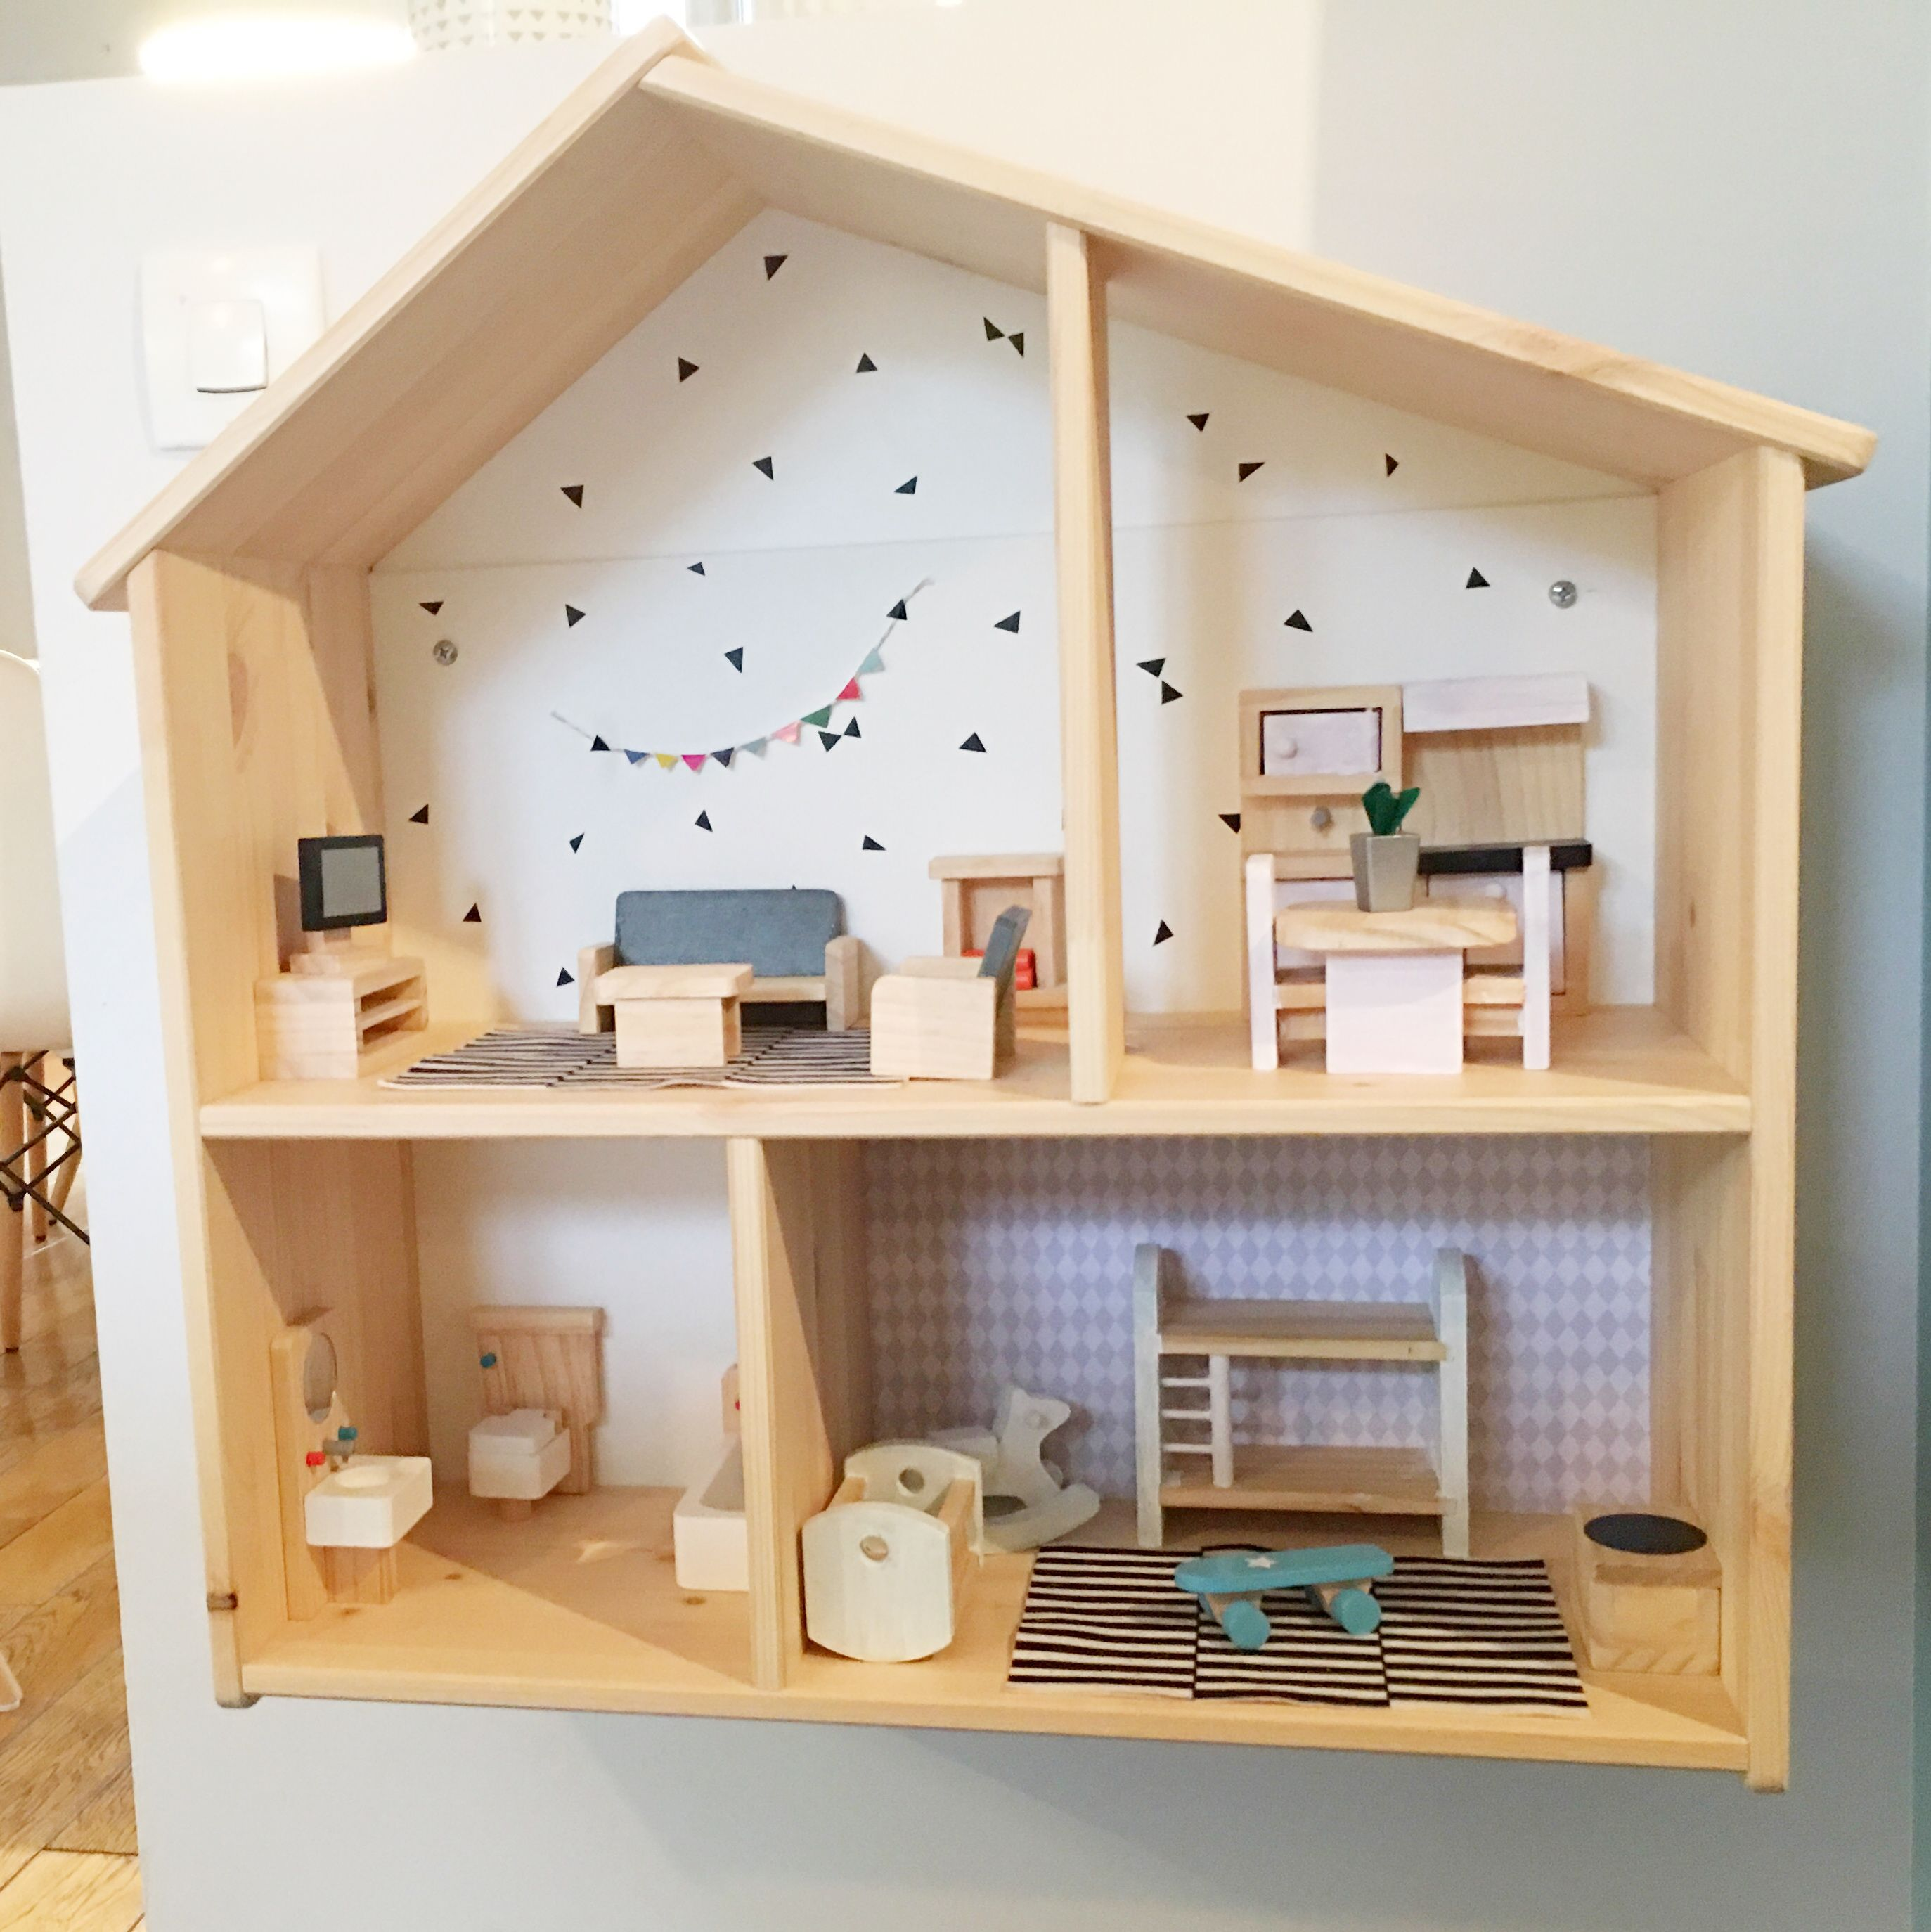 maison de poup e flisat ikea flisat pinterest doll. Black Bedroom Furniture Sets. Home Design Ideas